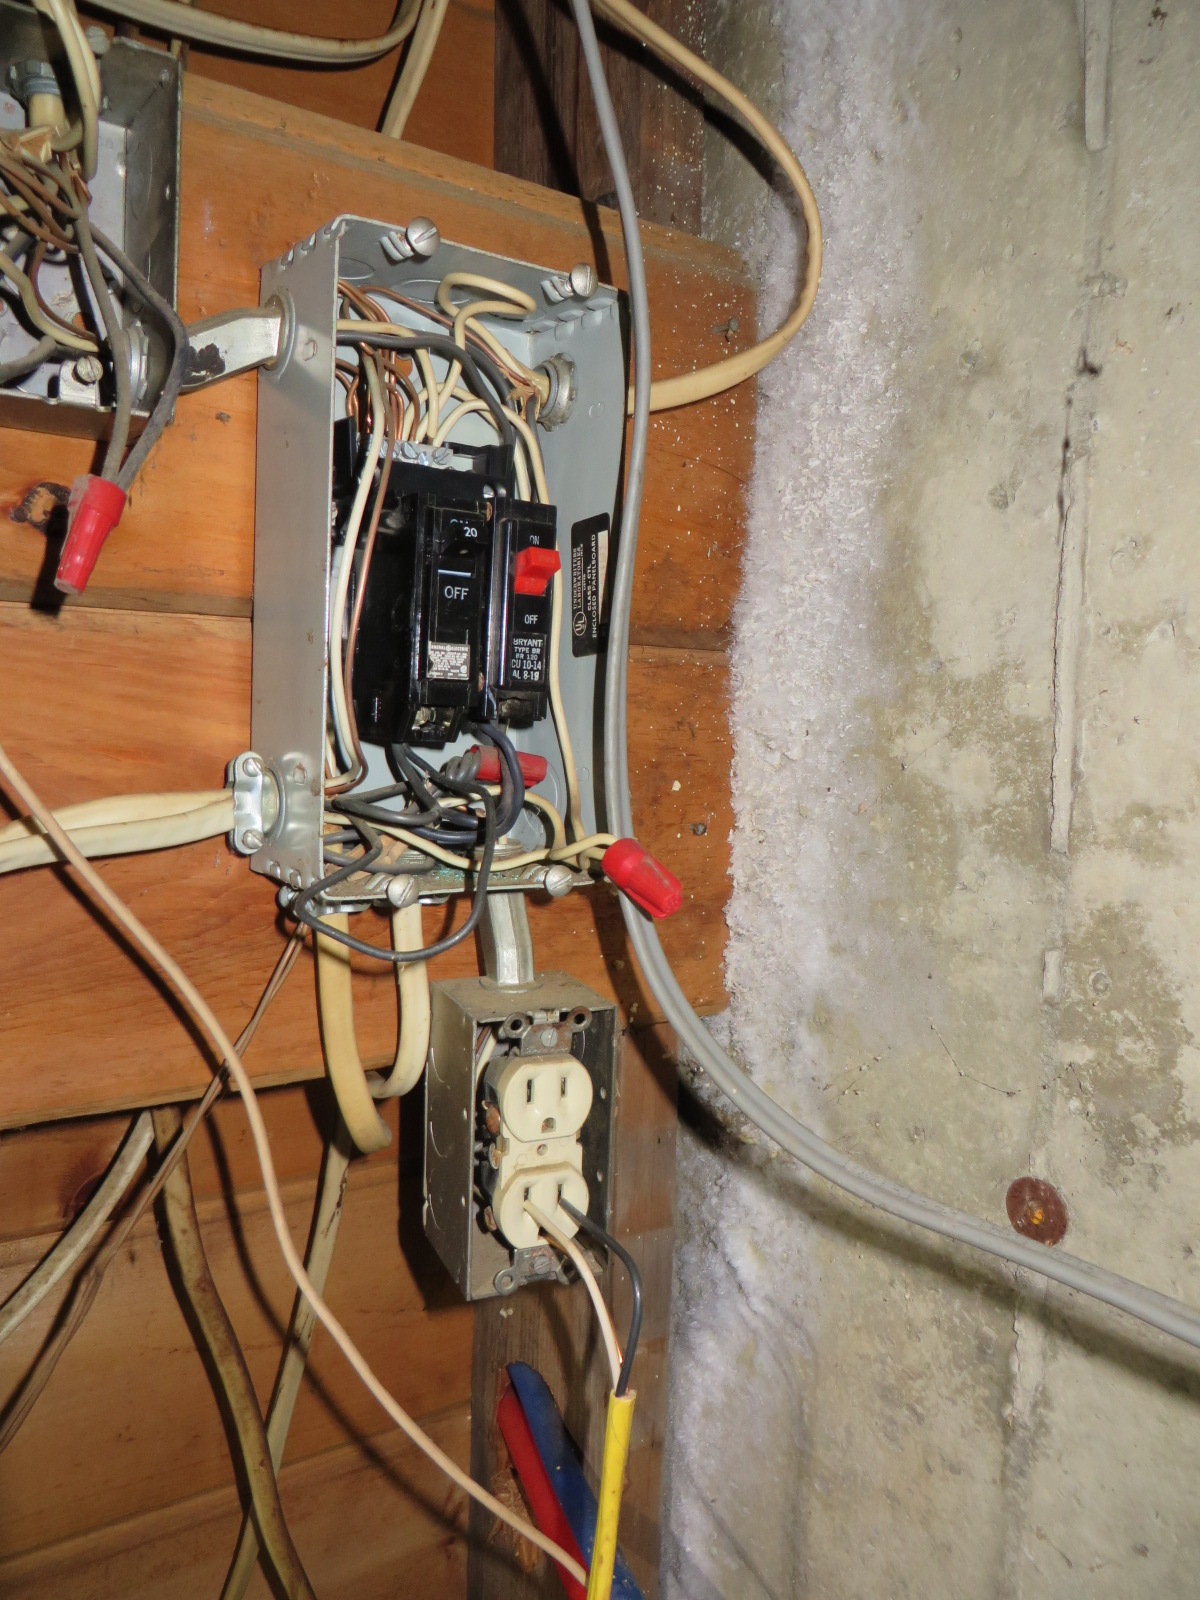 Not a preferred approach for electrical connections